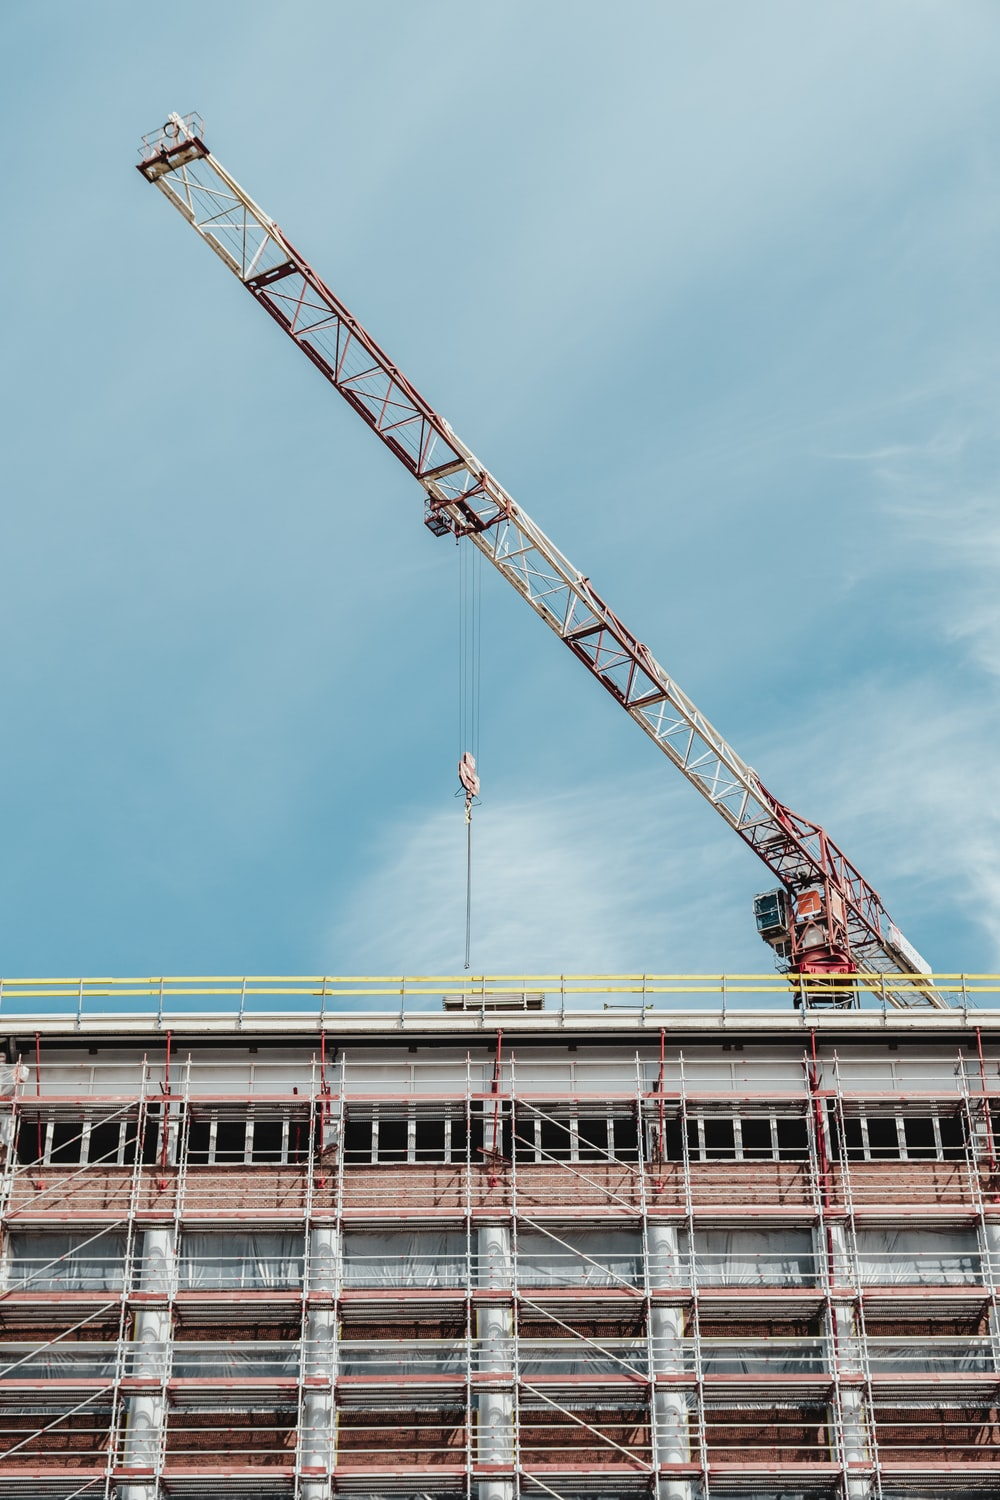 gray and brown crane on top of building